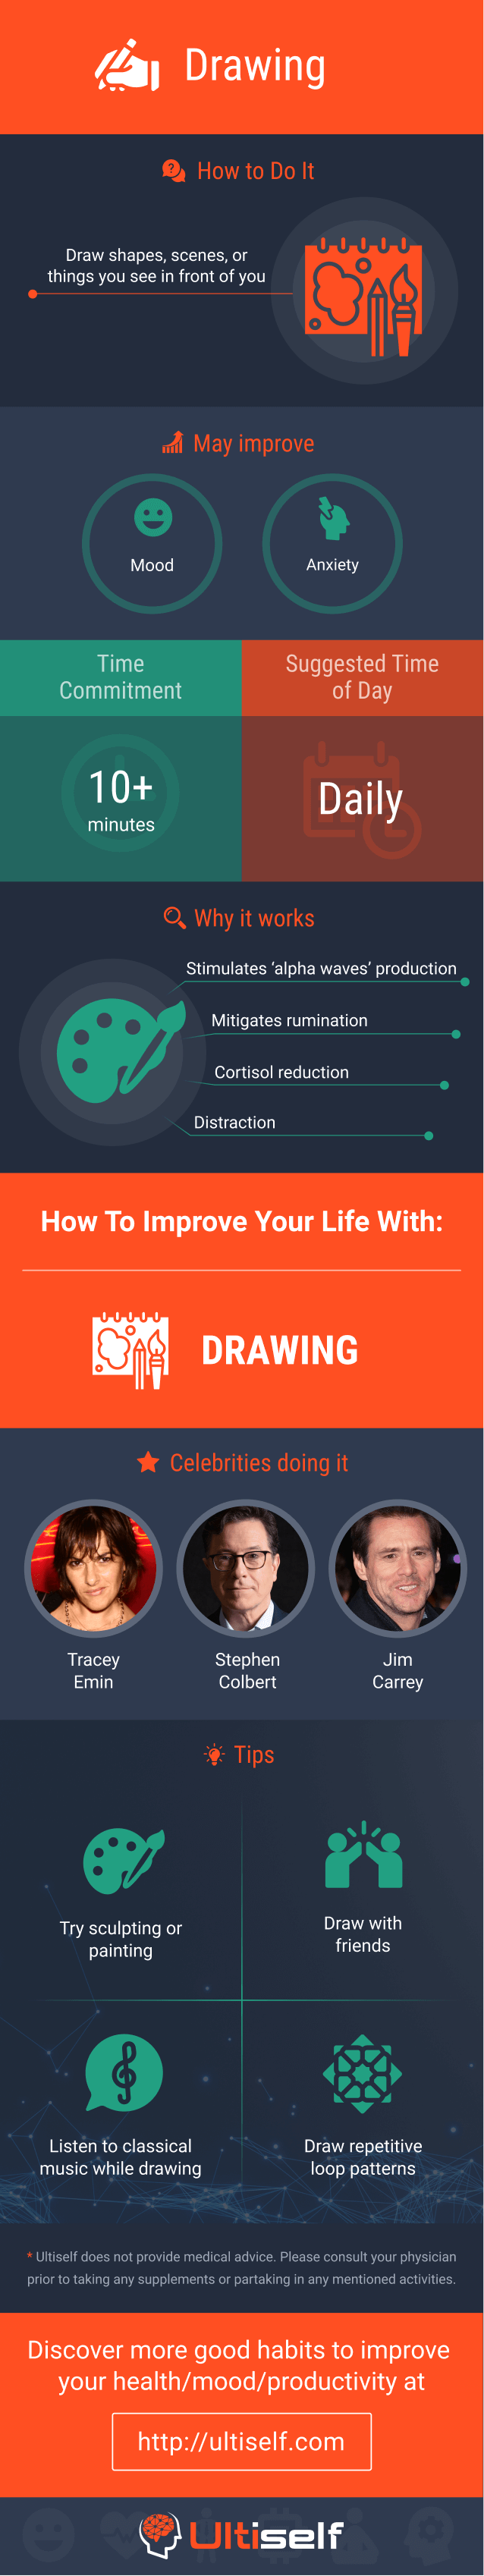 Drawing infographic